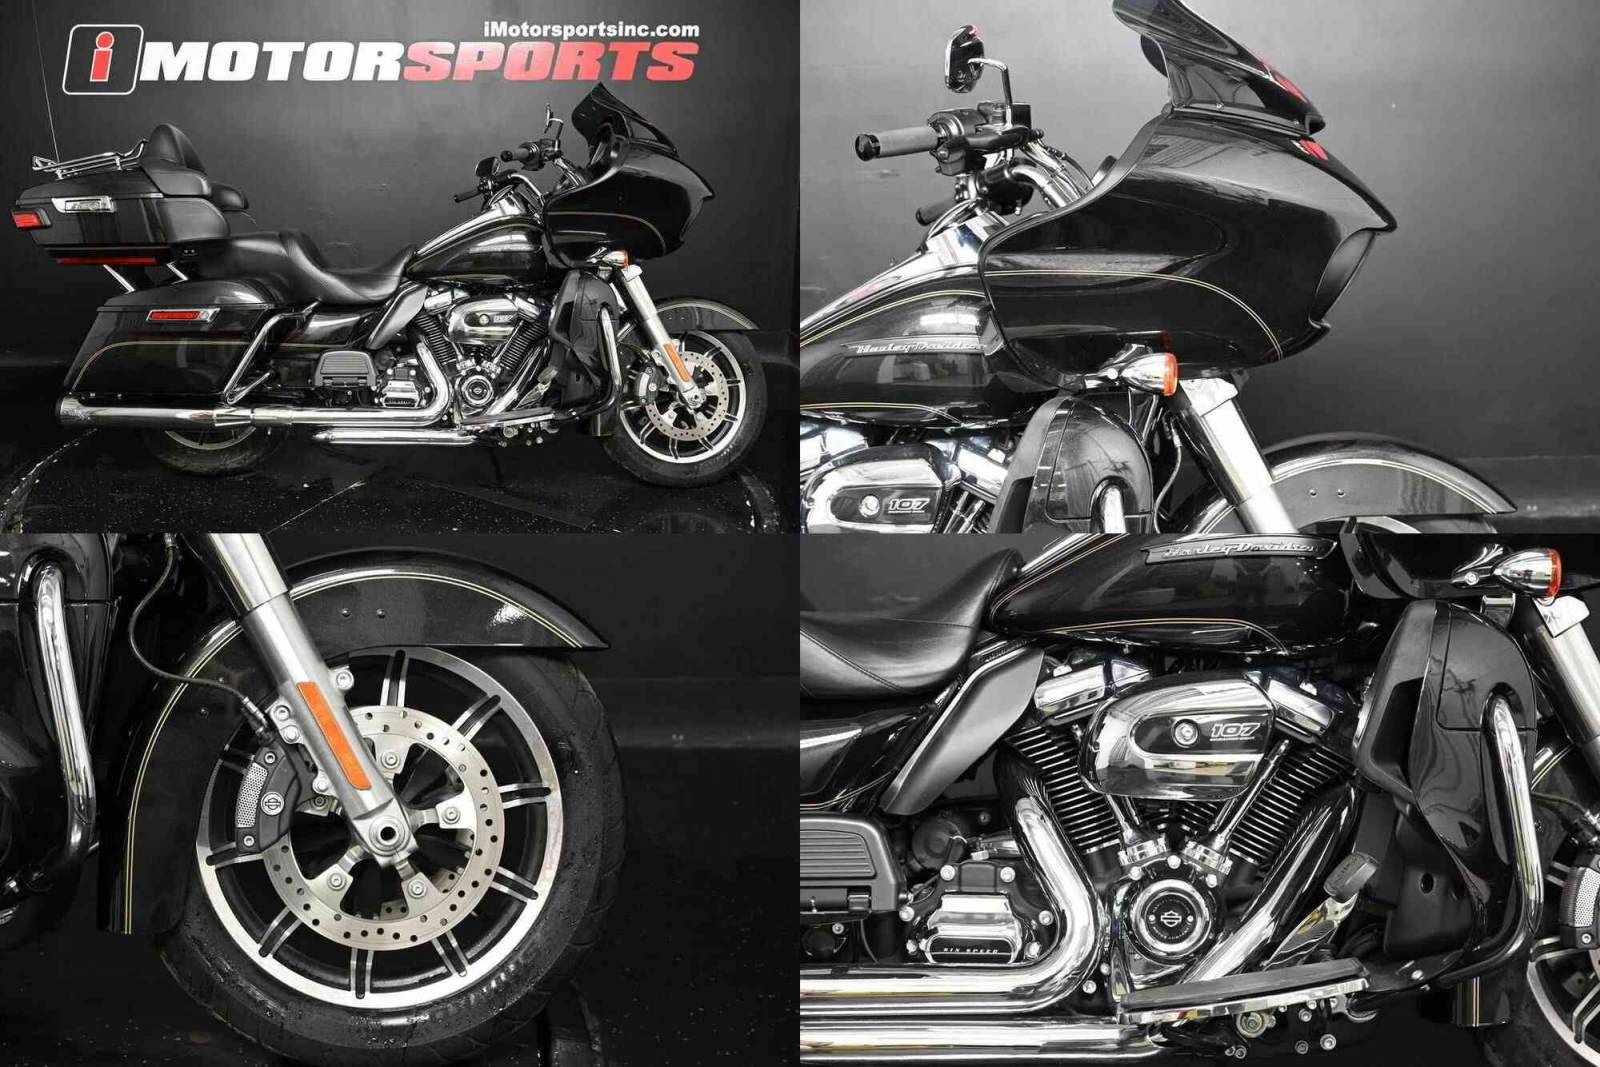 2017 Harley Davidson FLTRU   Road Glide Ultra  for sale craigslist